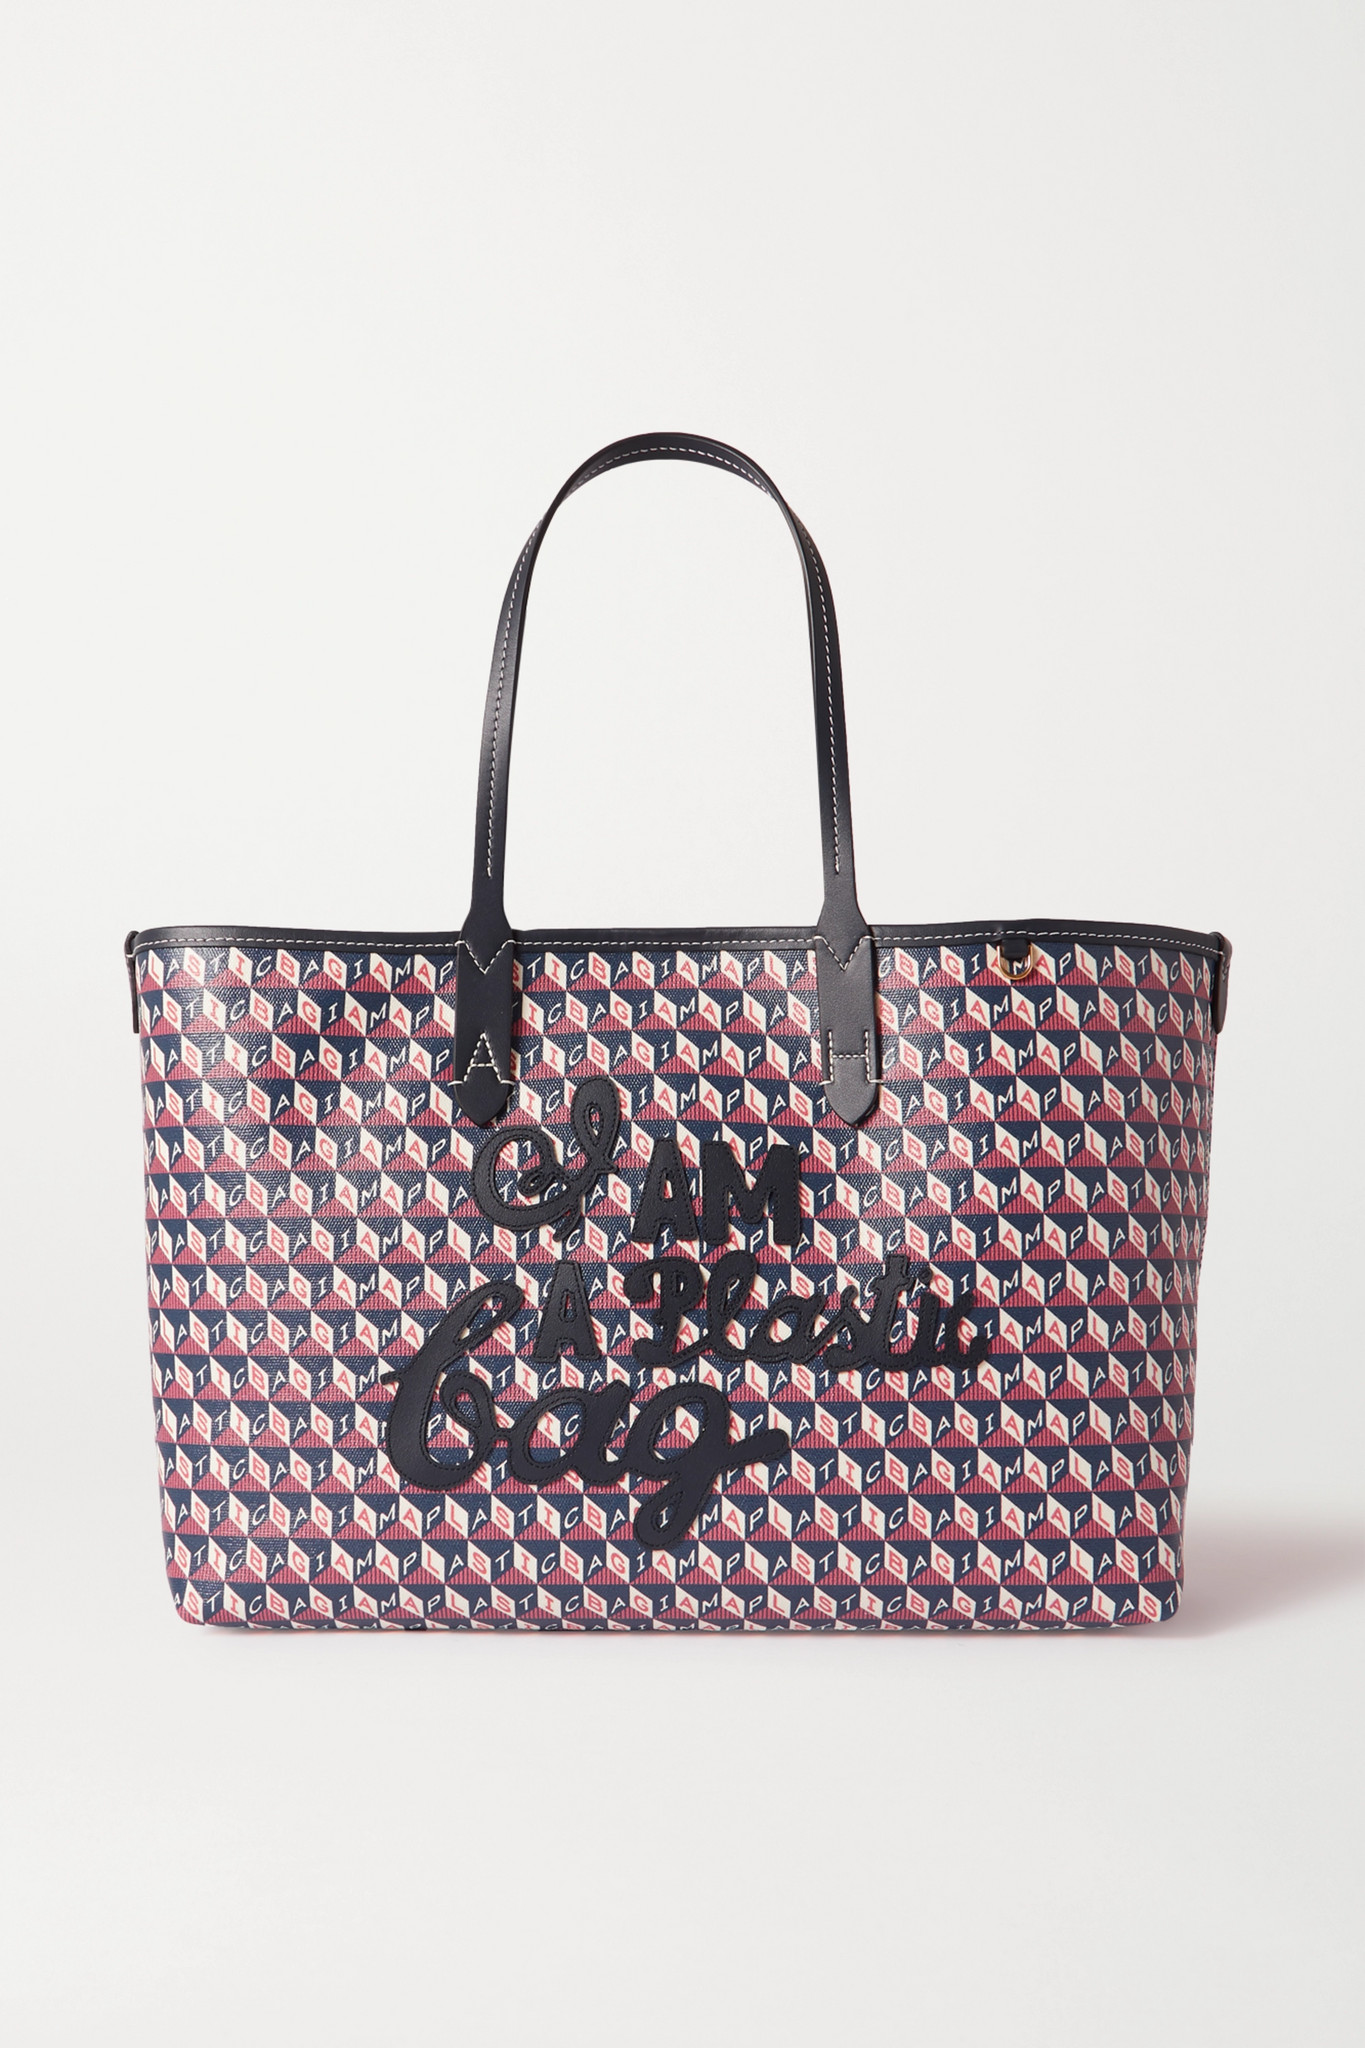 ANYA HINDMARCH - I Am A Plastic Bag Small Appliquéd Leather-trimmed Printed Coated-canvas Tote - Blu